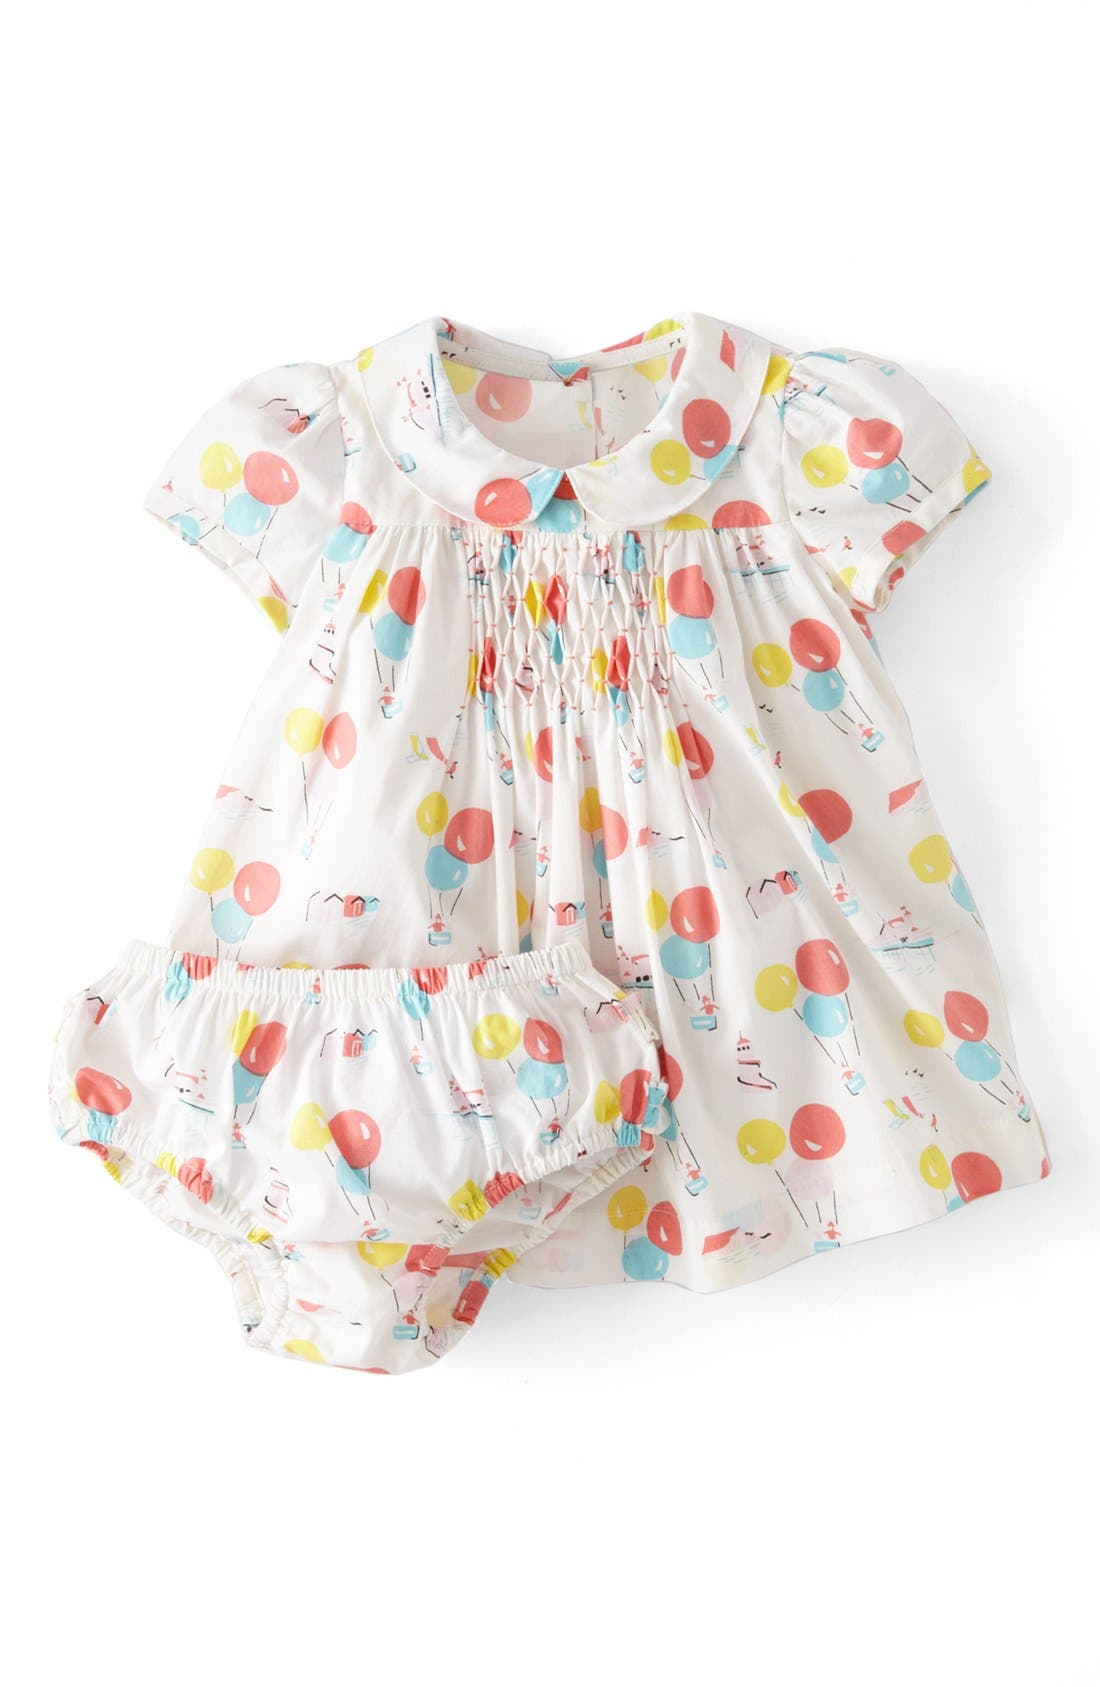 Main Image - Mini Boden 'Pretty Printed' Tea Dress (Baby Girls)